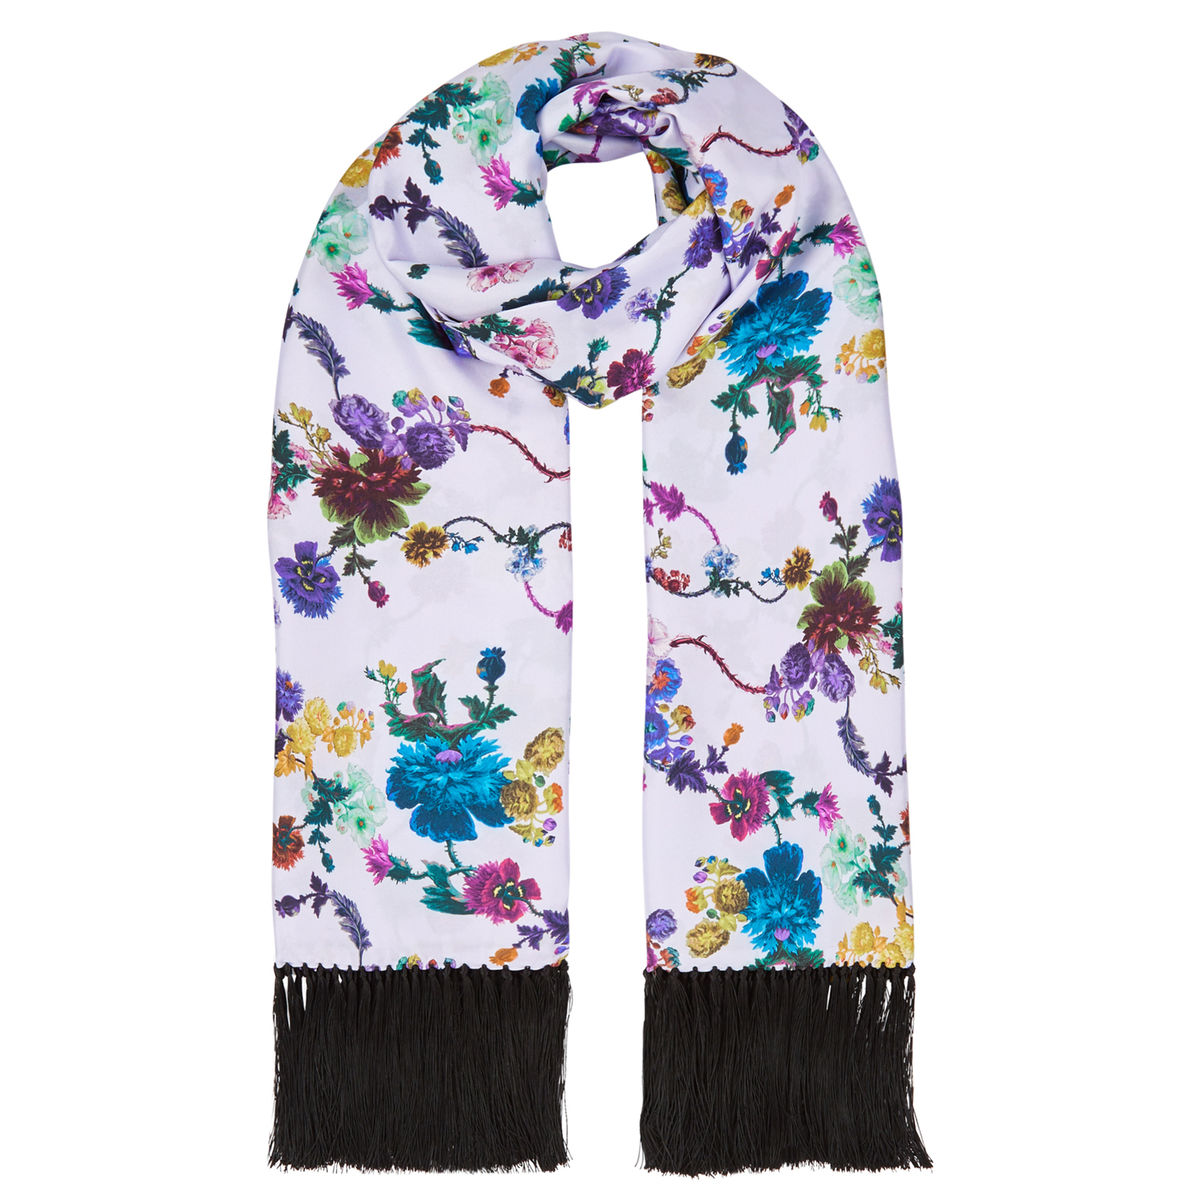 Delores hand Tasselled silk twill scarf in Gothic floral print (iced lilac) - product images  of